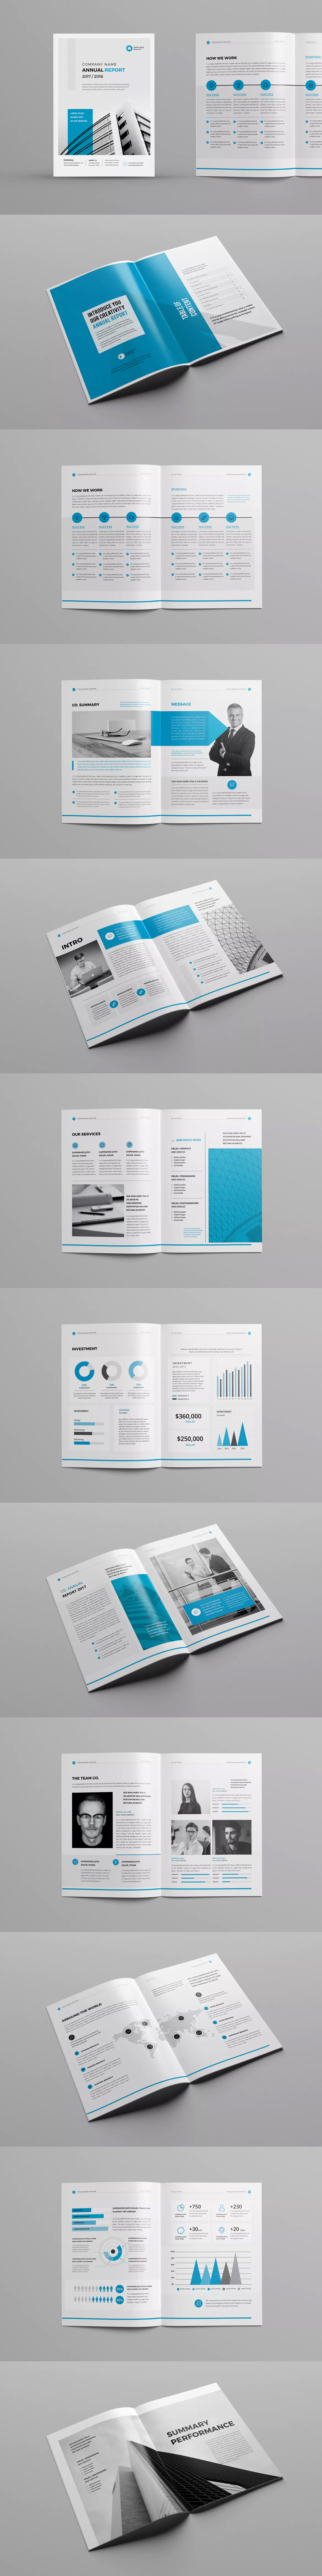 Annual Report Template InDesign INDD - A4 - 28 Pages | Annual Report ...